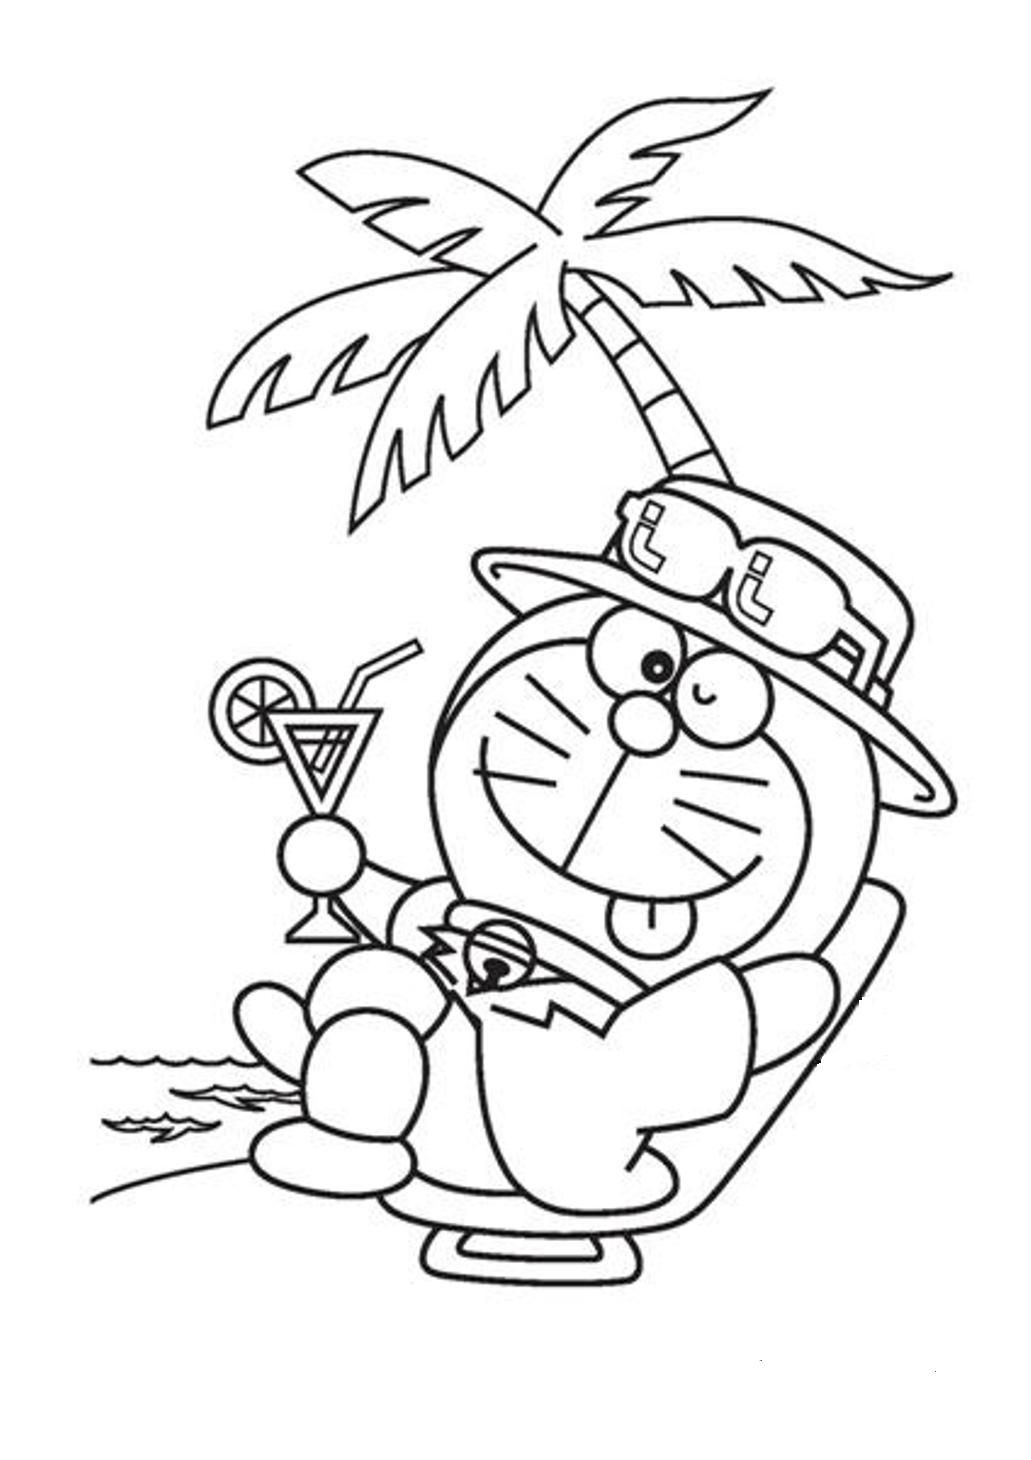 Doraemon Coloring Pages Coloring Home